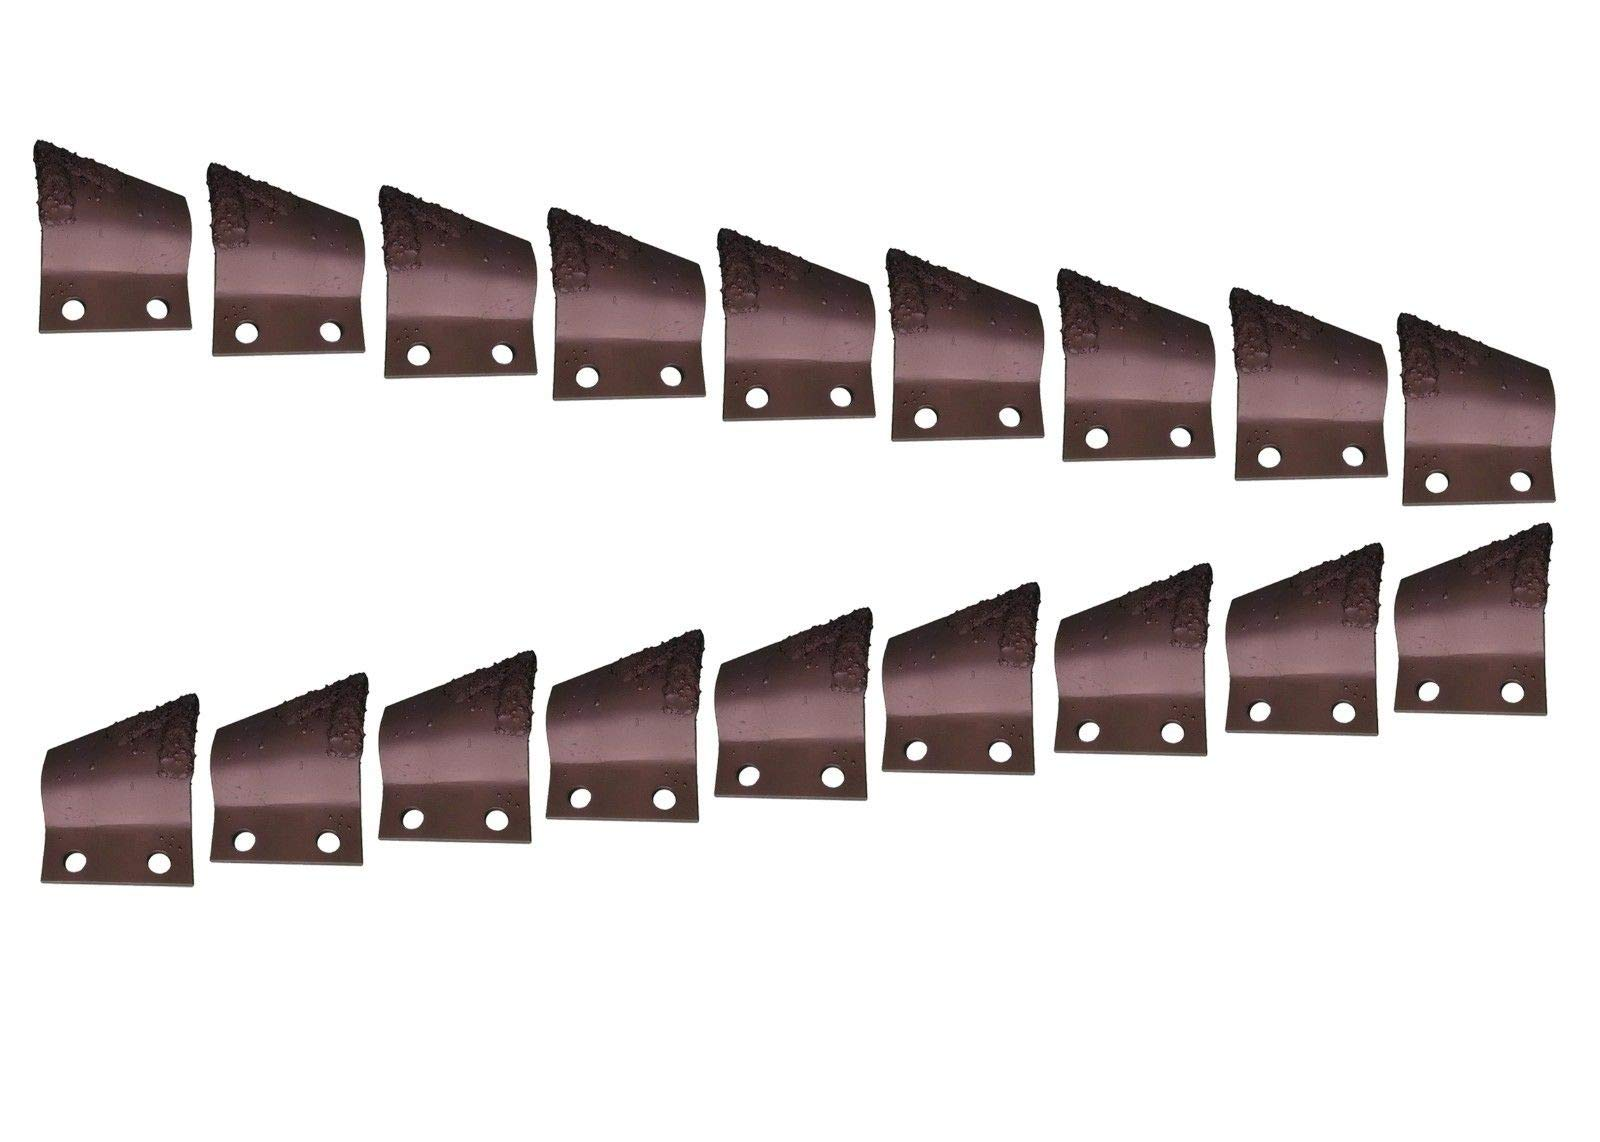 Cupped Trenching Teeth w Carbide- B135924, B135925, 2'' Centers on Bolt Holes by Digger Supply